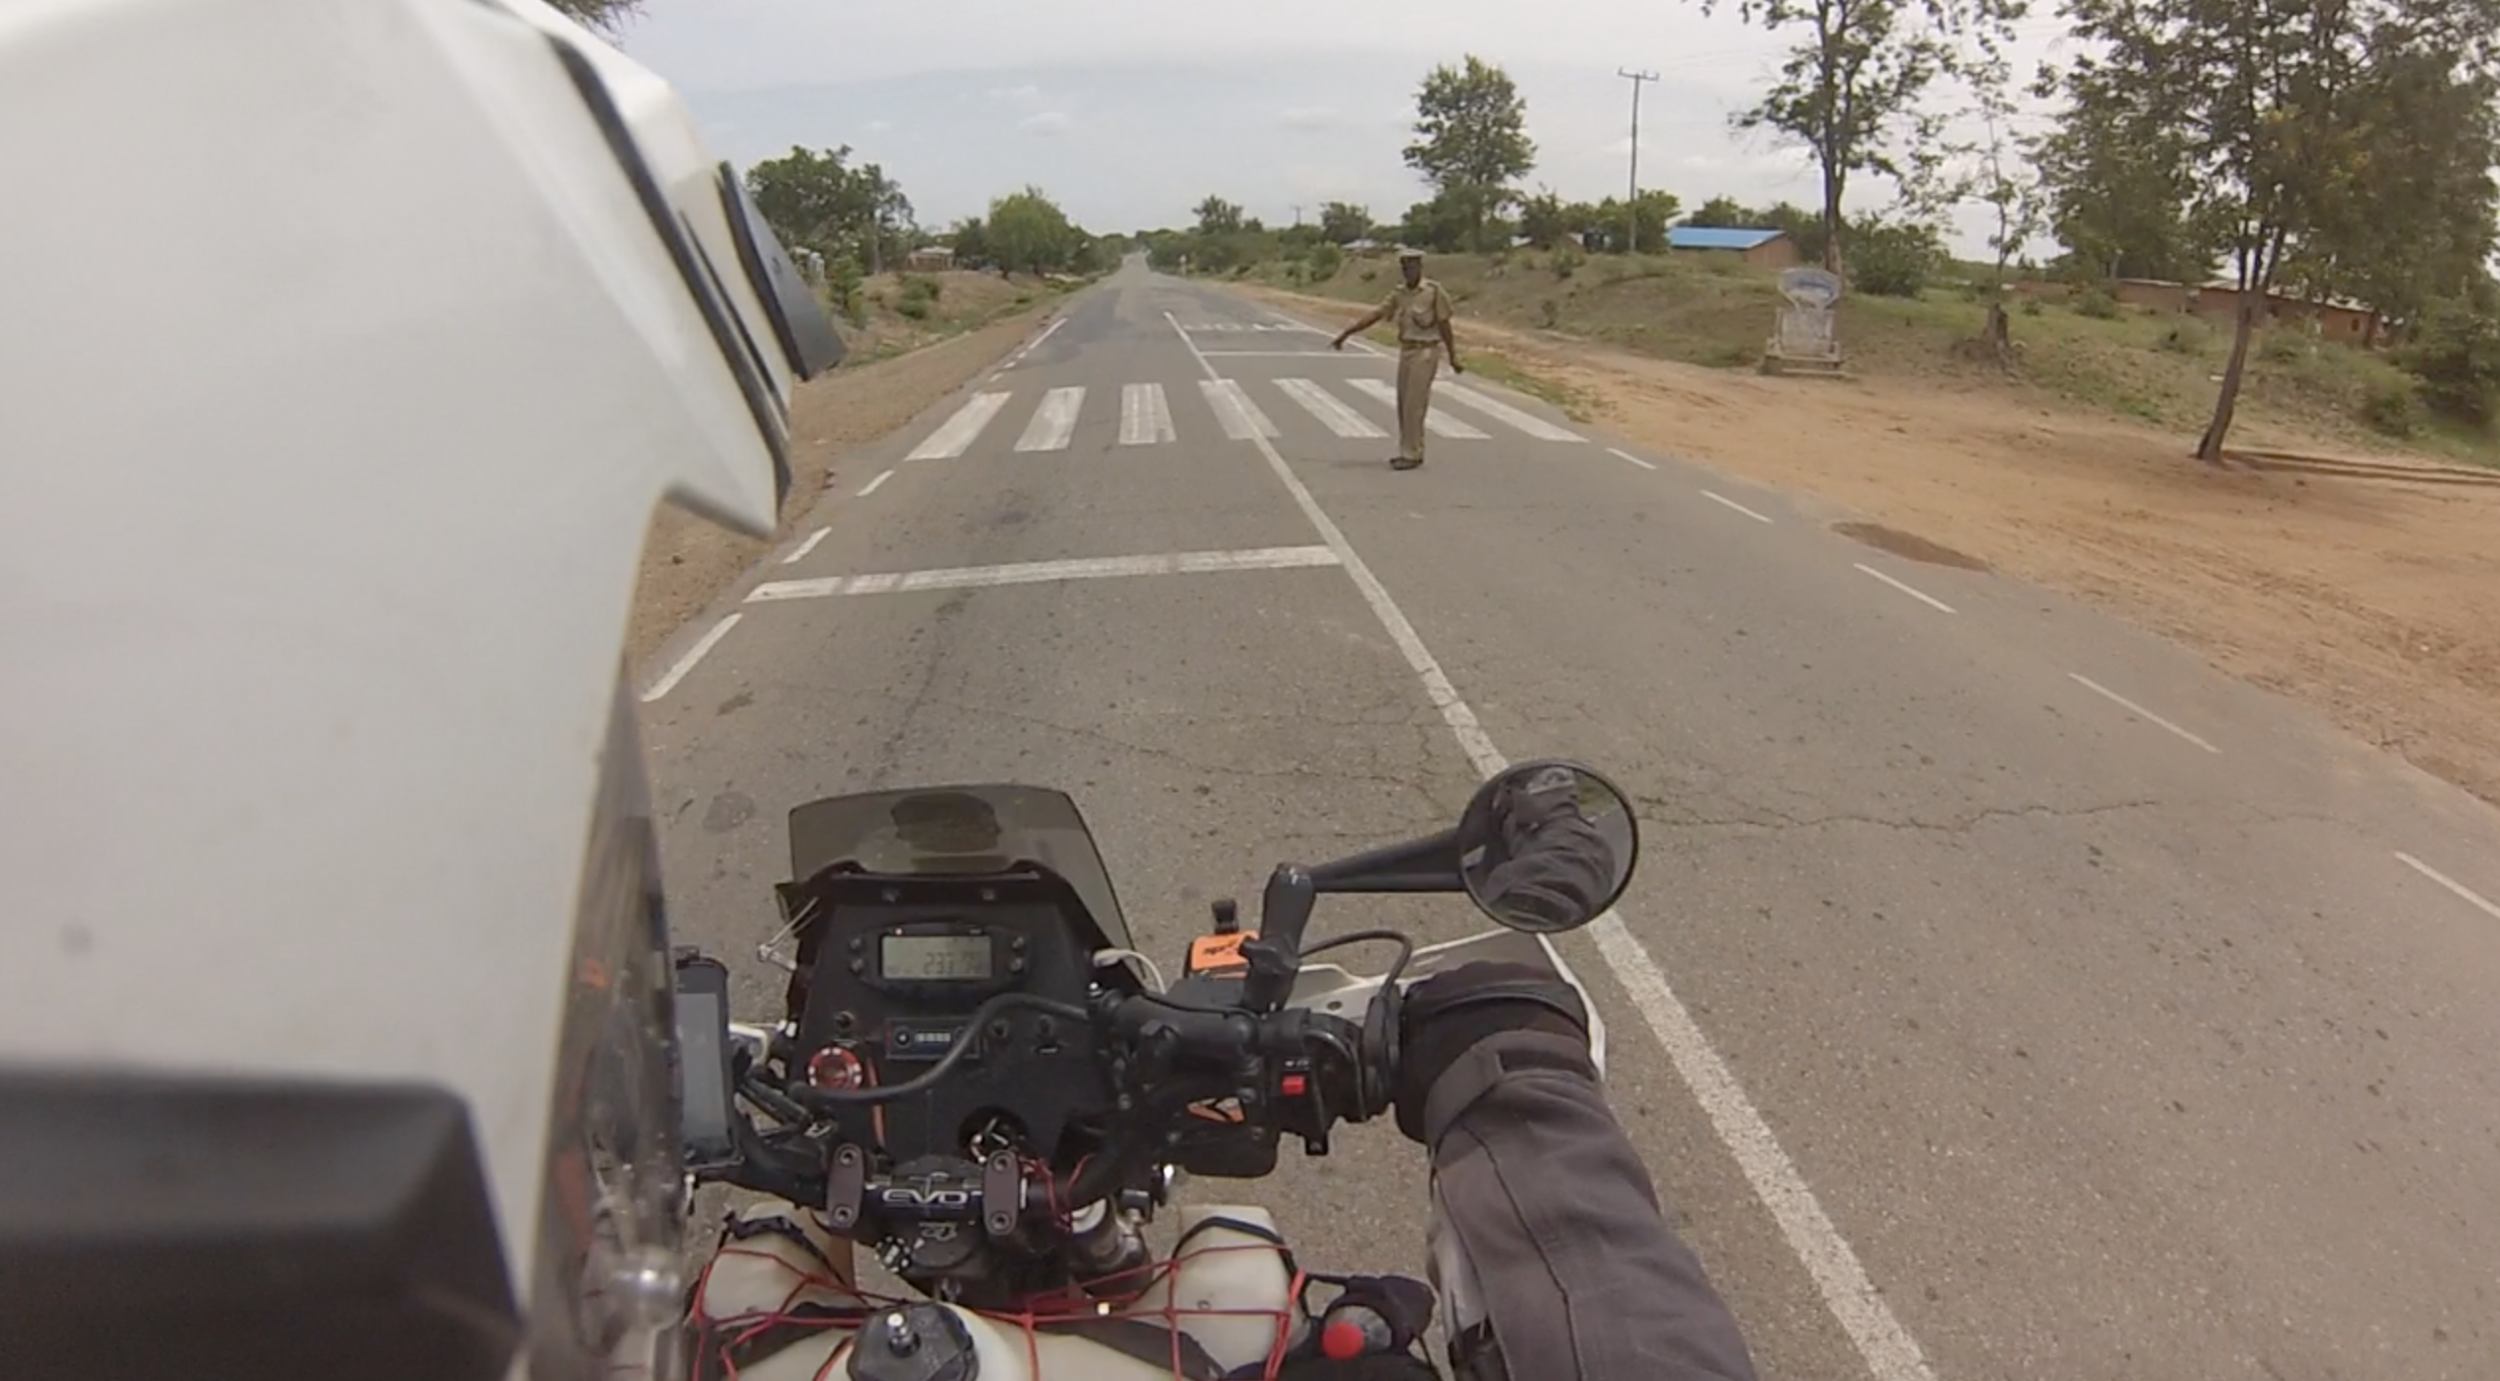 You be the judge. I pull up right where he's pointing, and he fines me for not stopping on the white line.